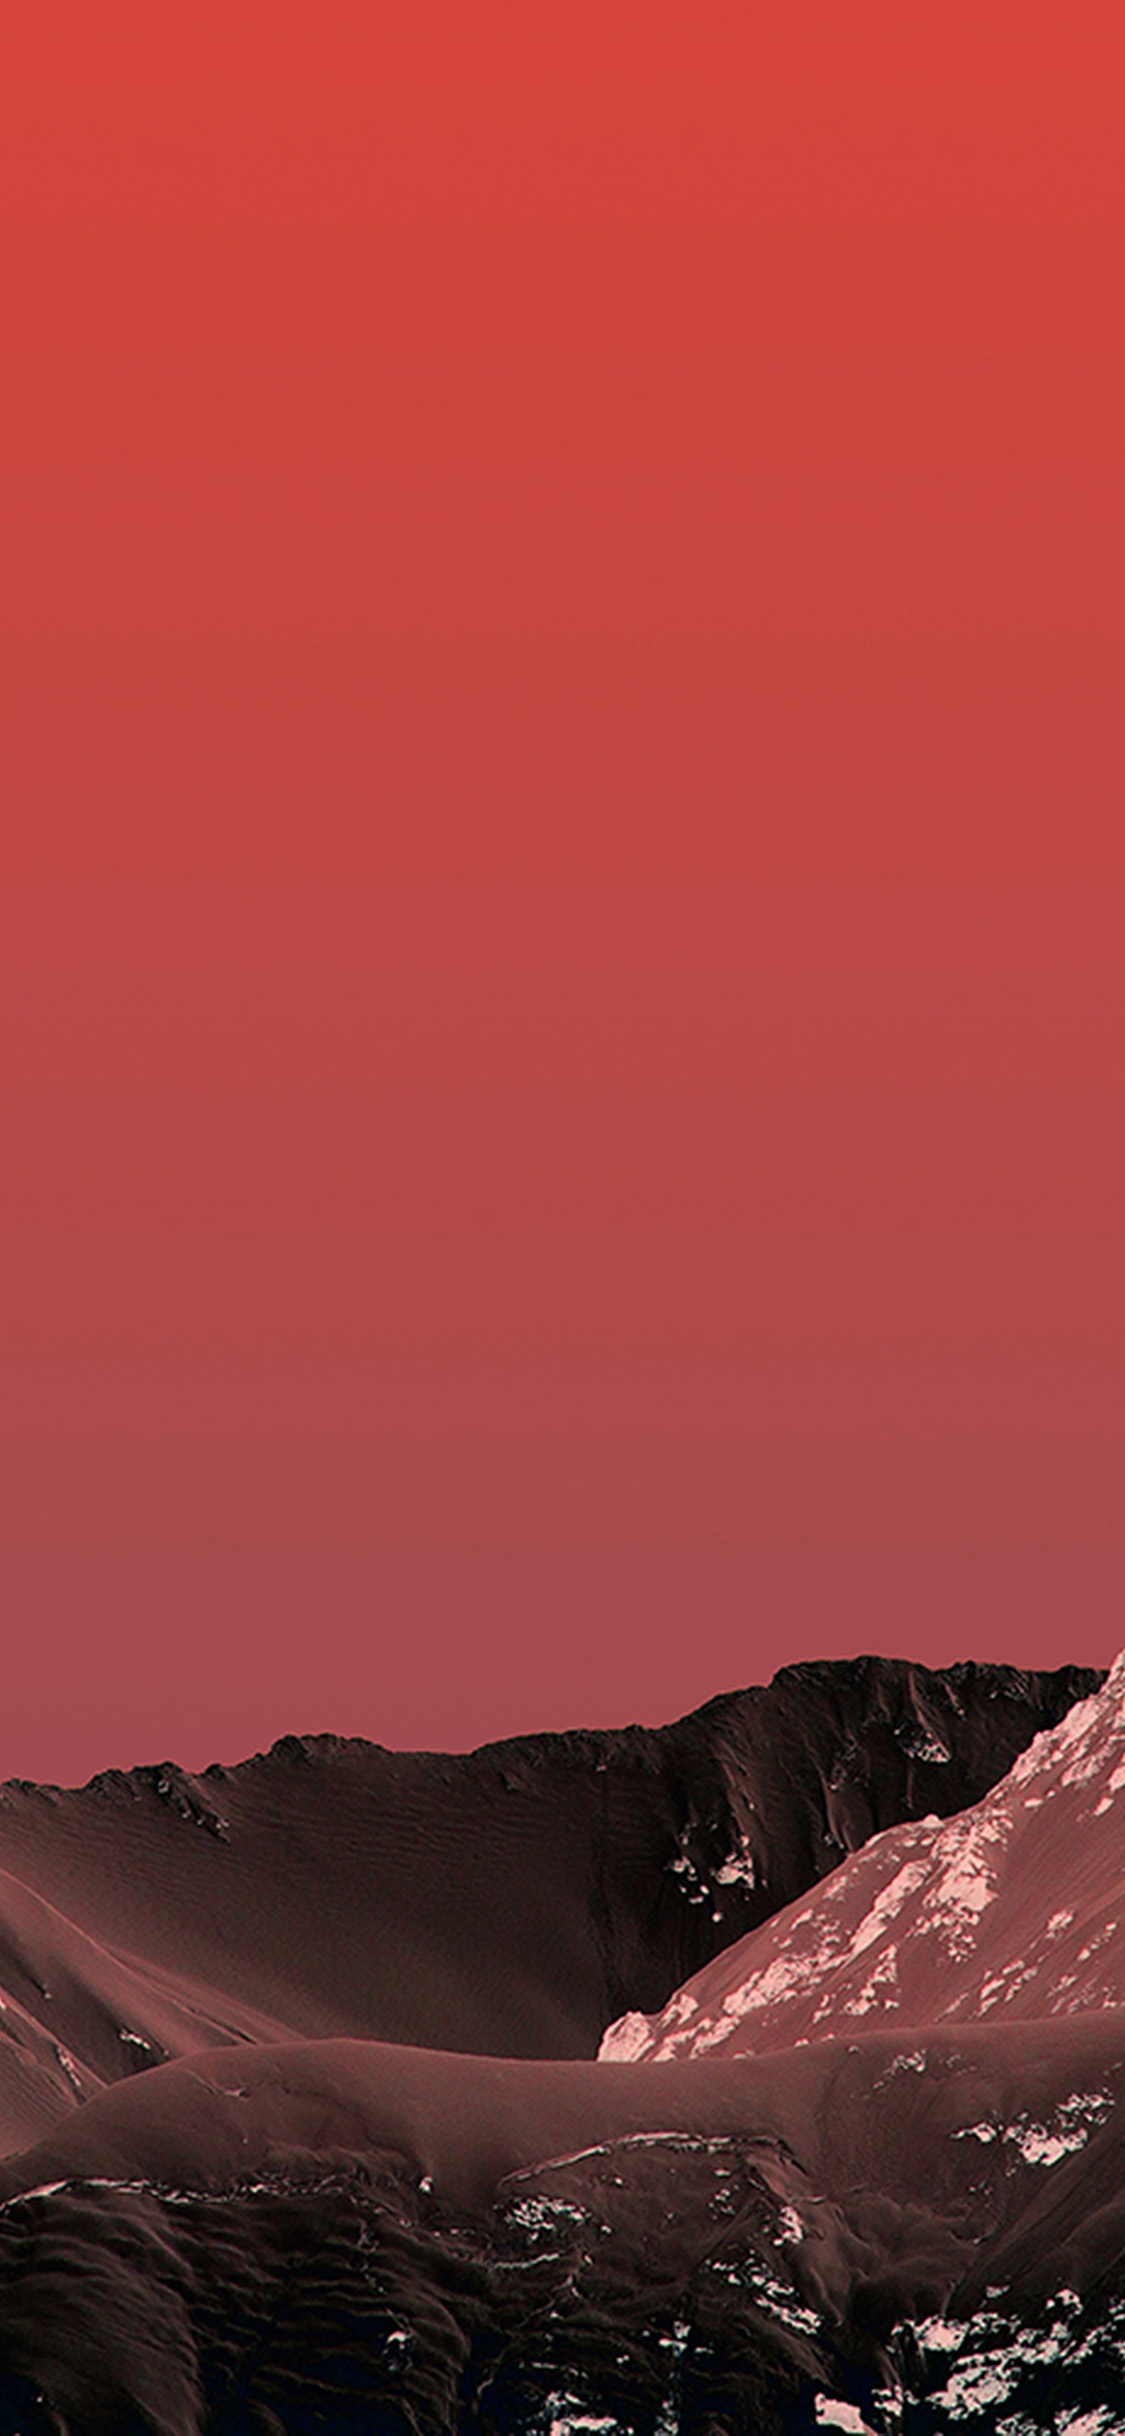 Iphonexpapers Com Iphone X Wallpaper Wb24 Simple Moutain Red